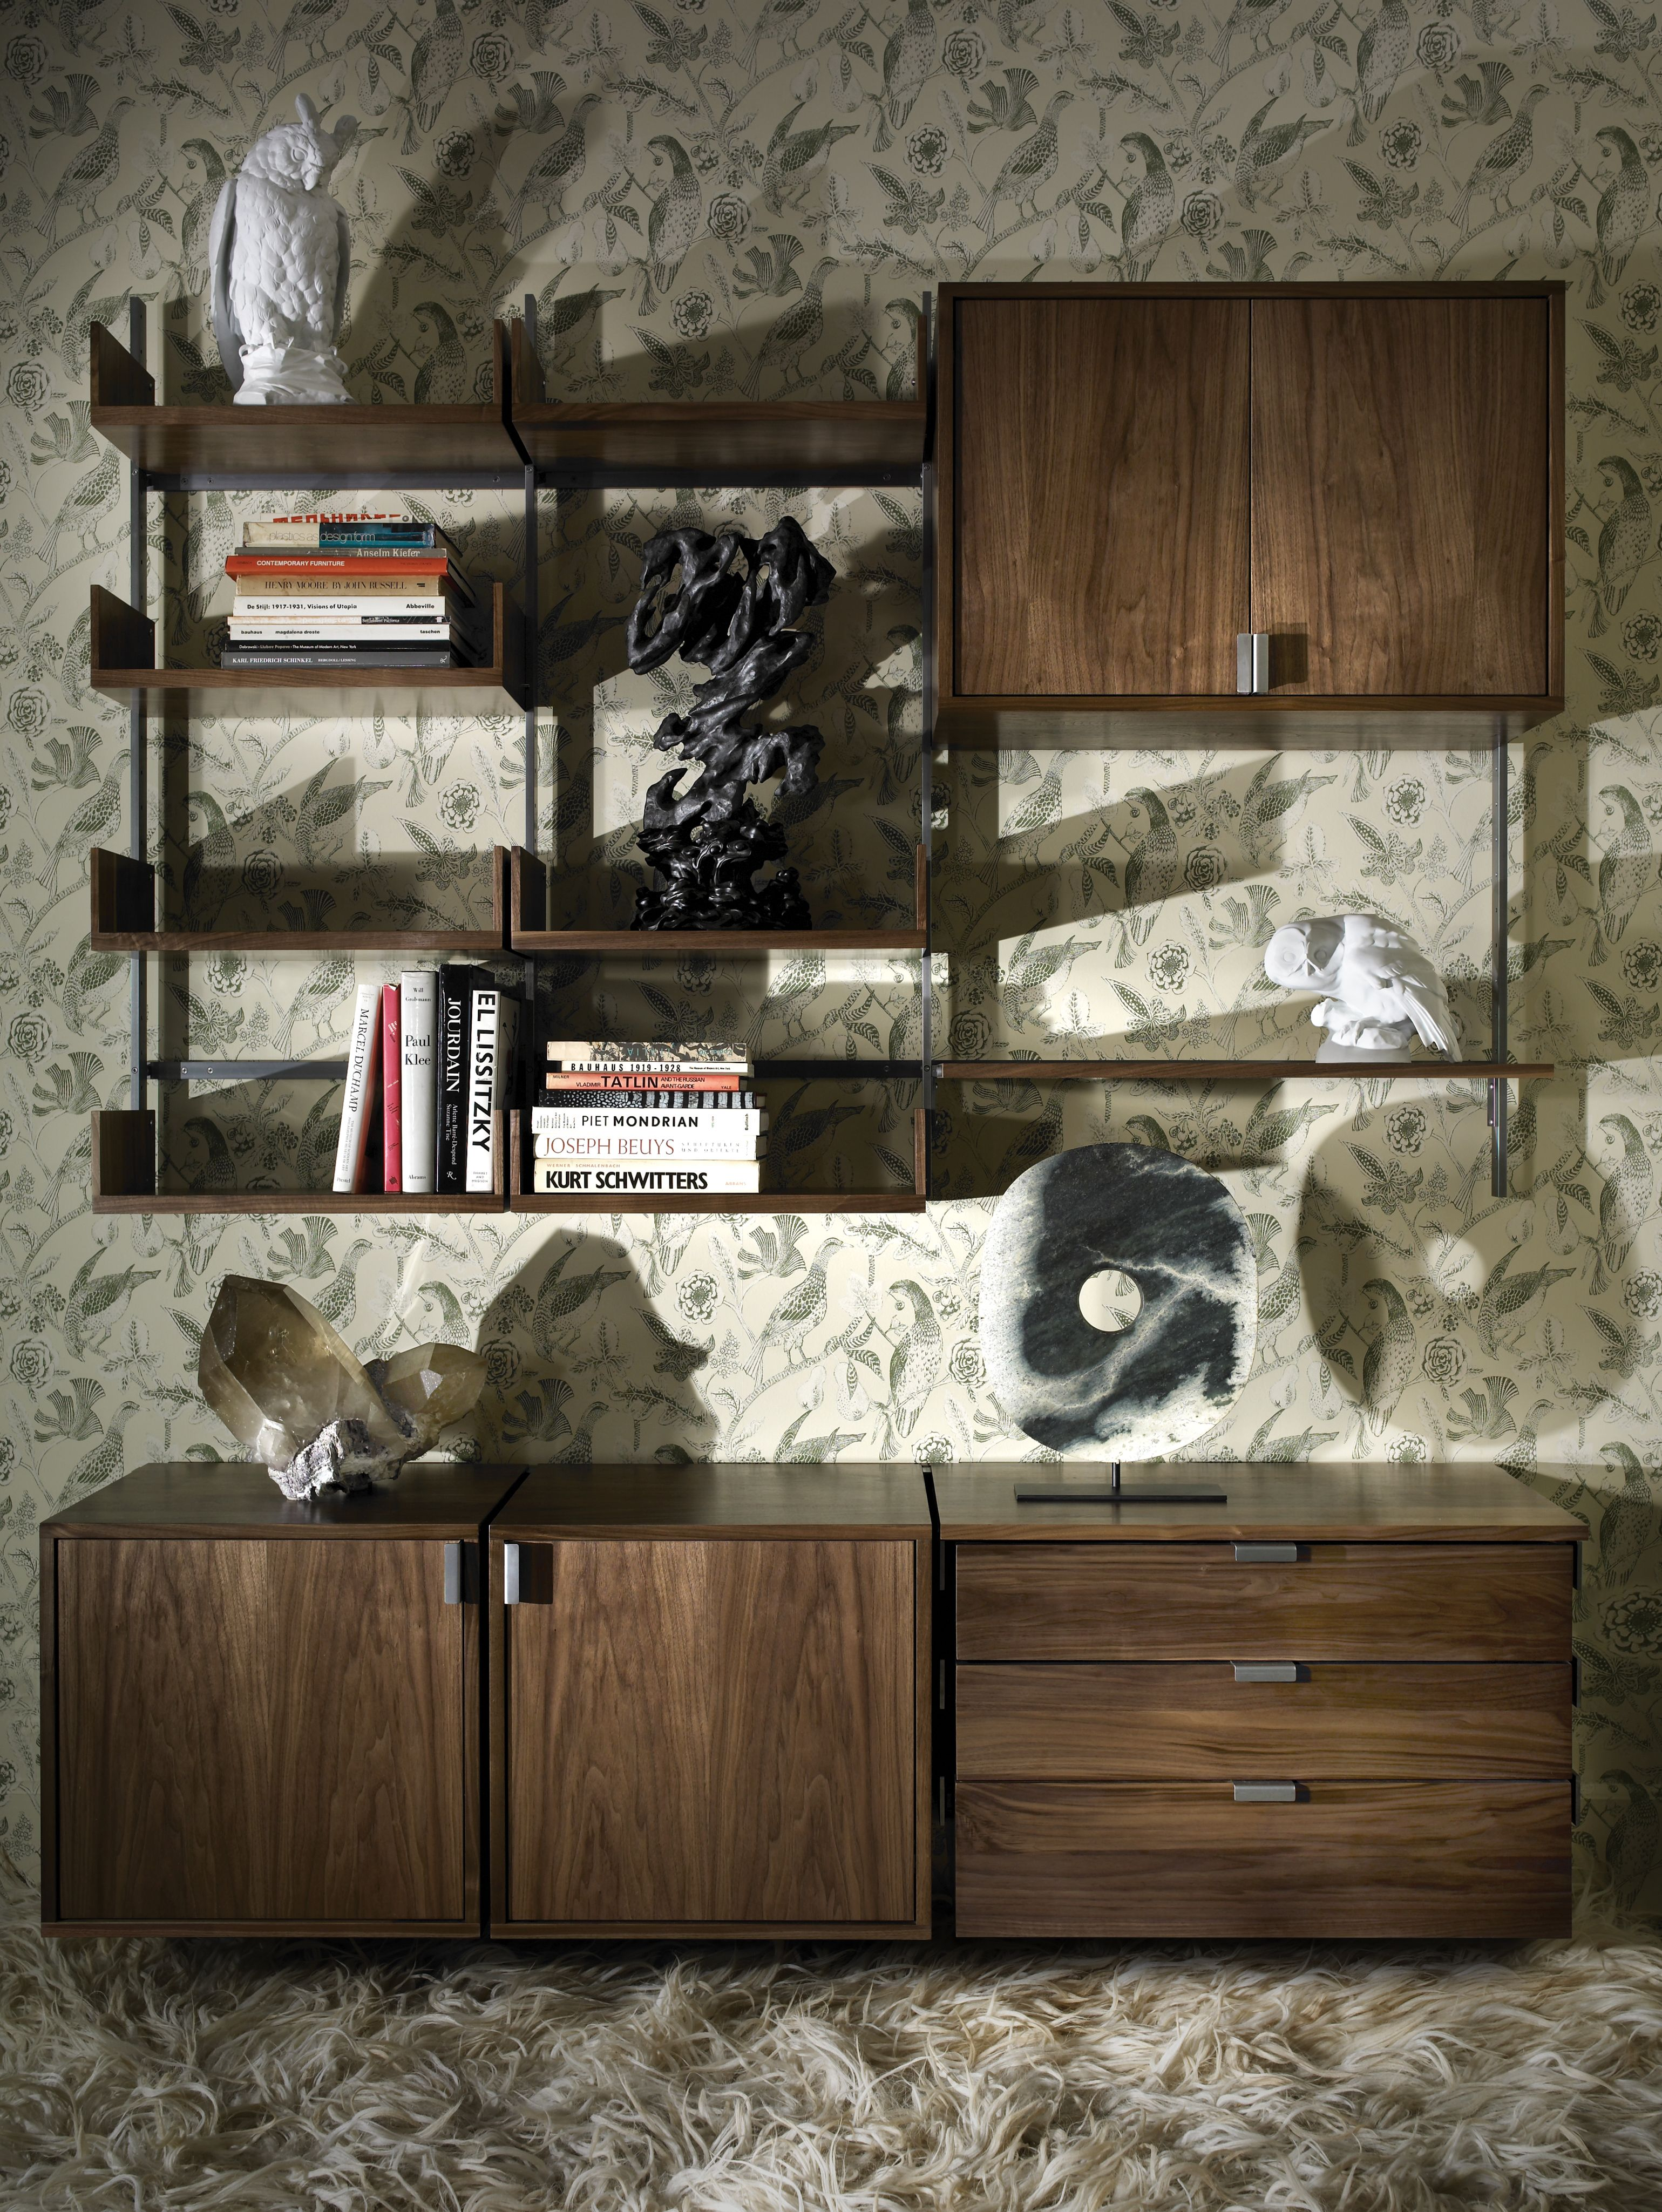 as4 modular furniture system show in walnut and cold-rolled steel ...